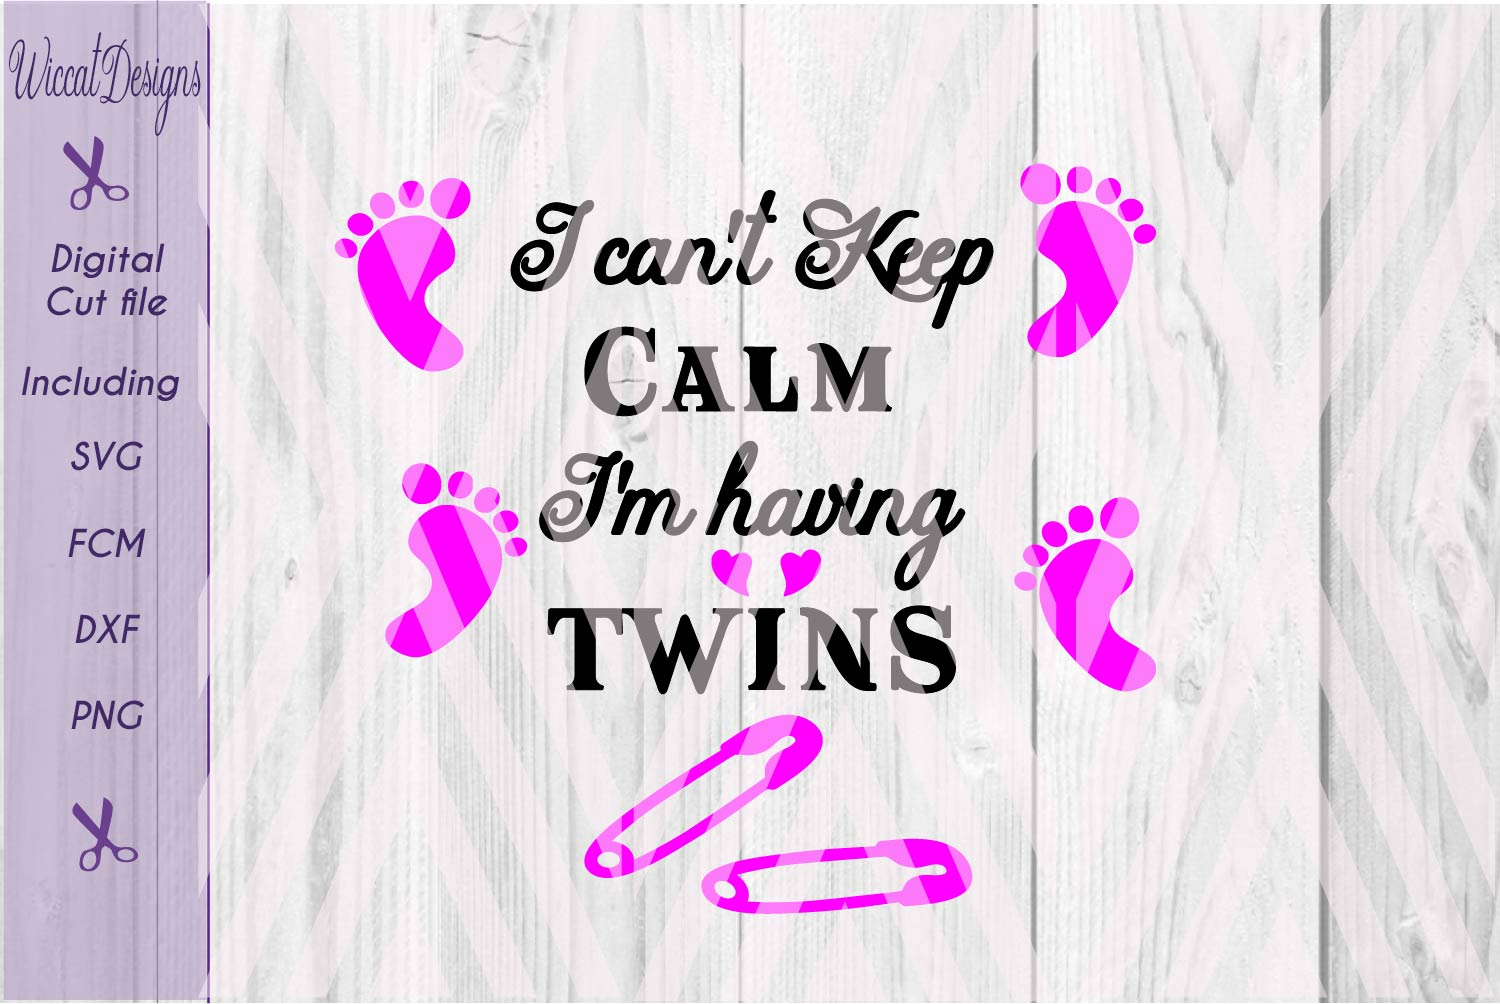 Twins svg, pregnant svg, Quotes svg, Keep calm svg, newborn example image 4